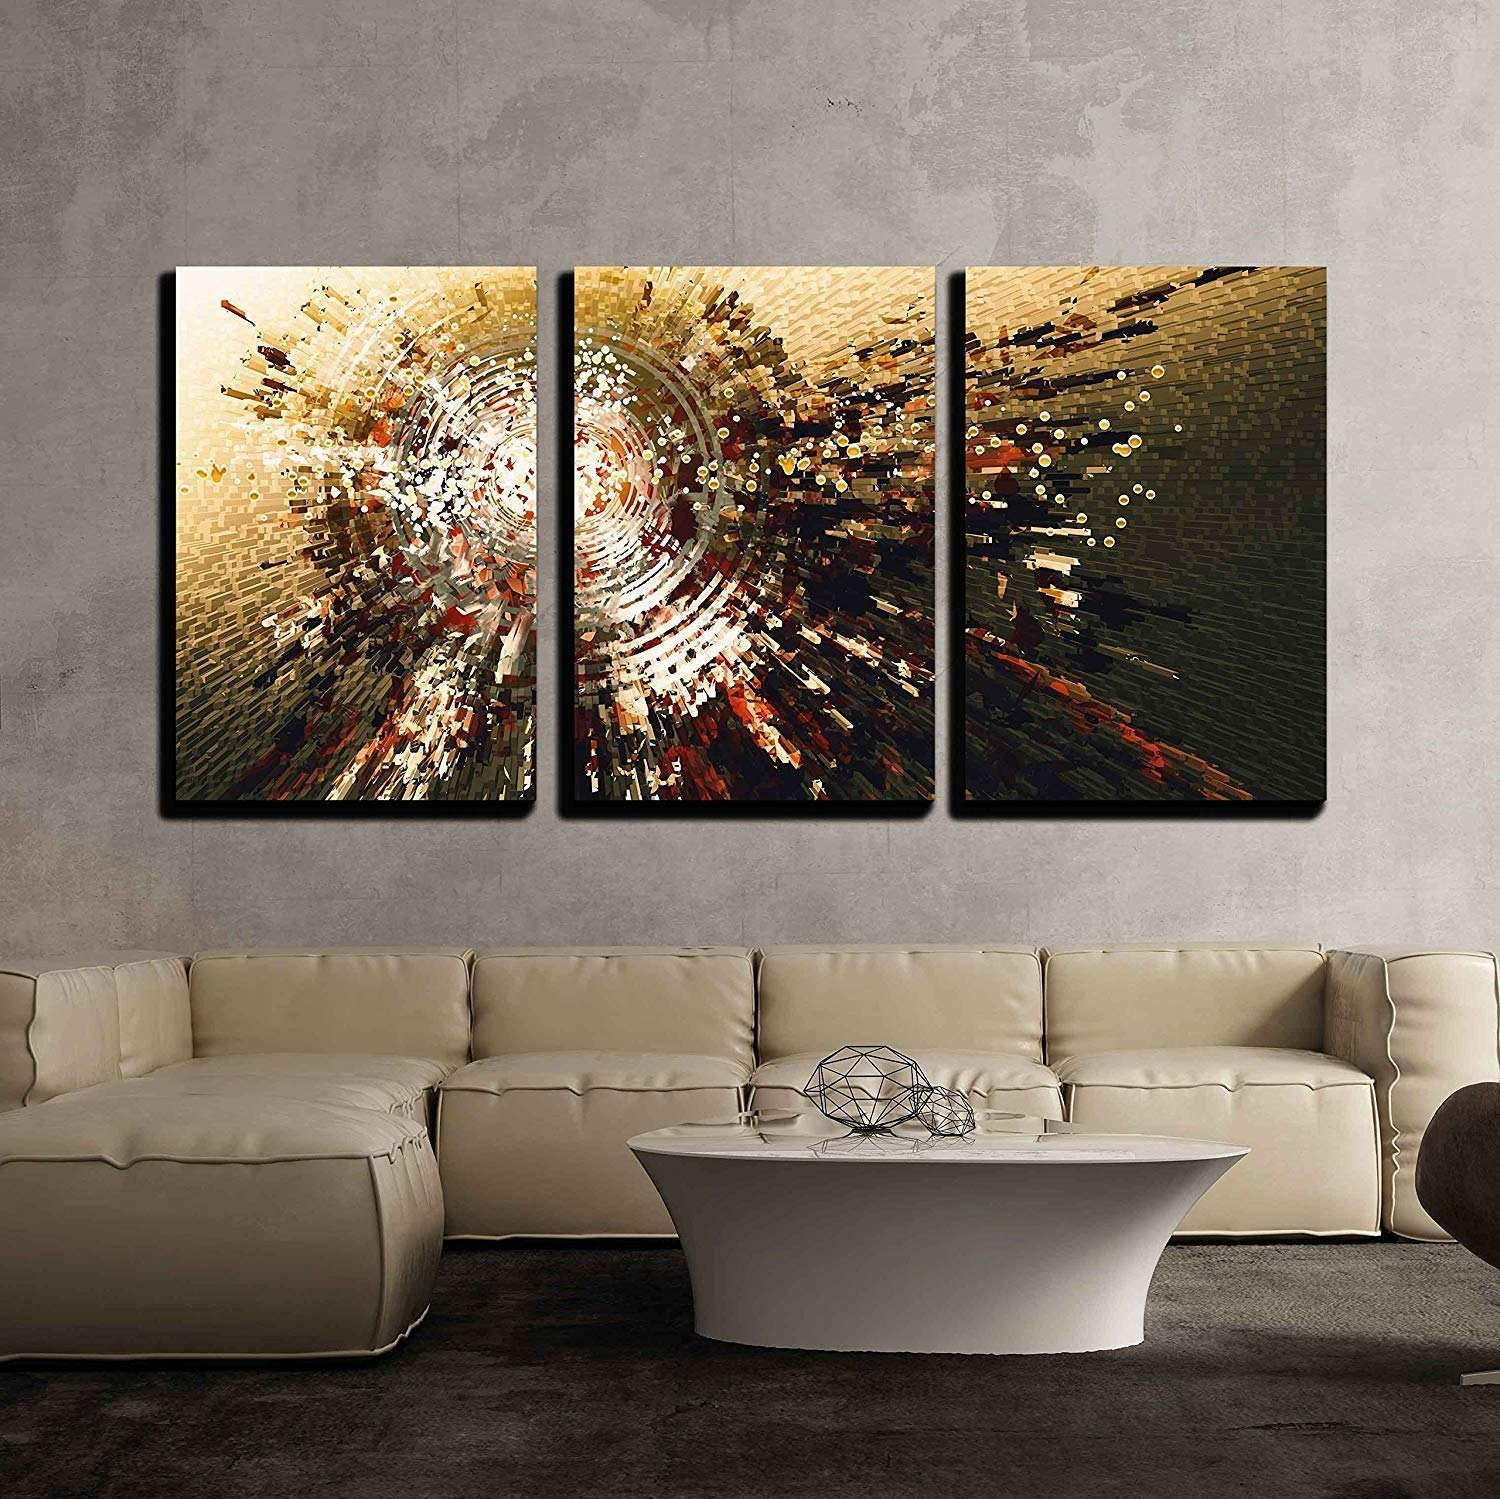 wall26 - 3 Piece Canvas Wall Art - Digital Painting of Abstract High Technology Circle Background - Modern Home Decor Stretched and Framed Ready to Hang - 24''x36''x3 Panels by wall26